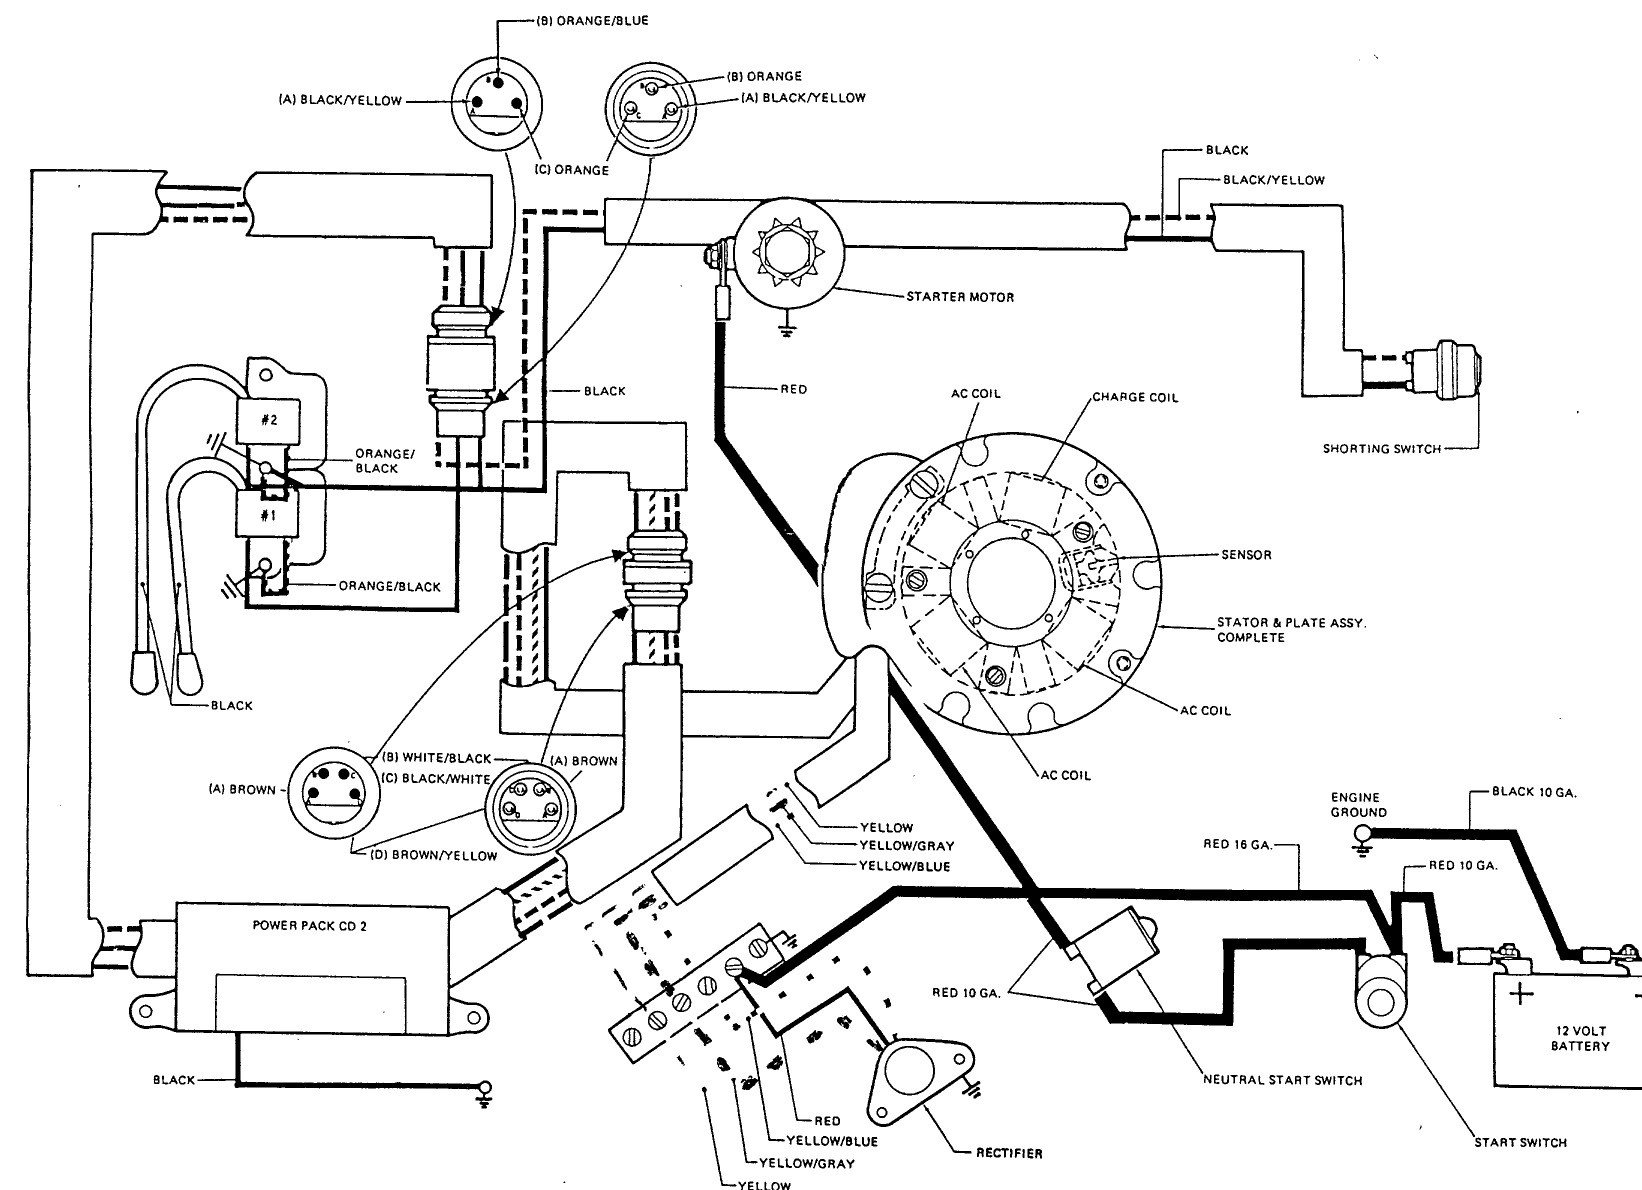 marine engine diagram how to draw and read line diagrams